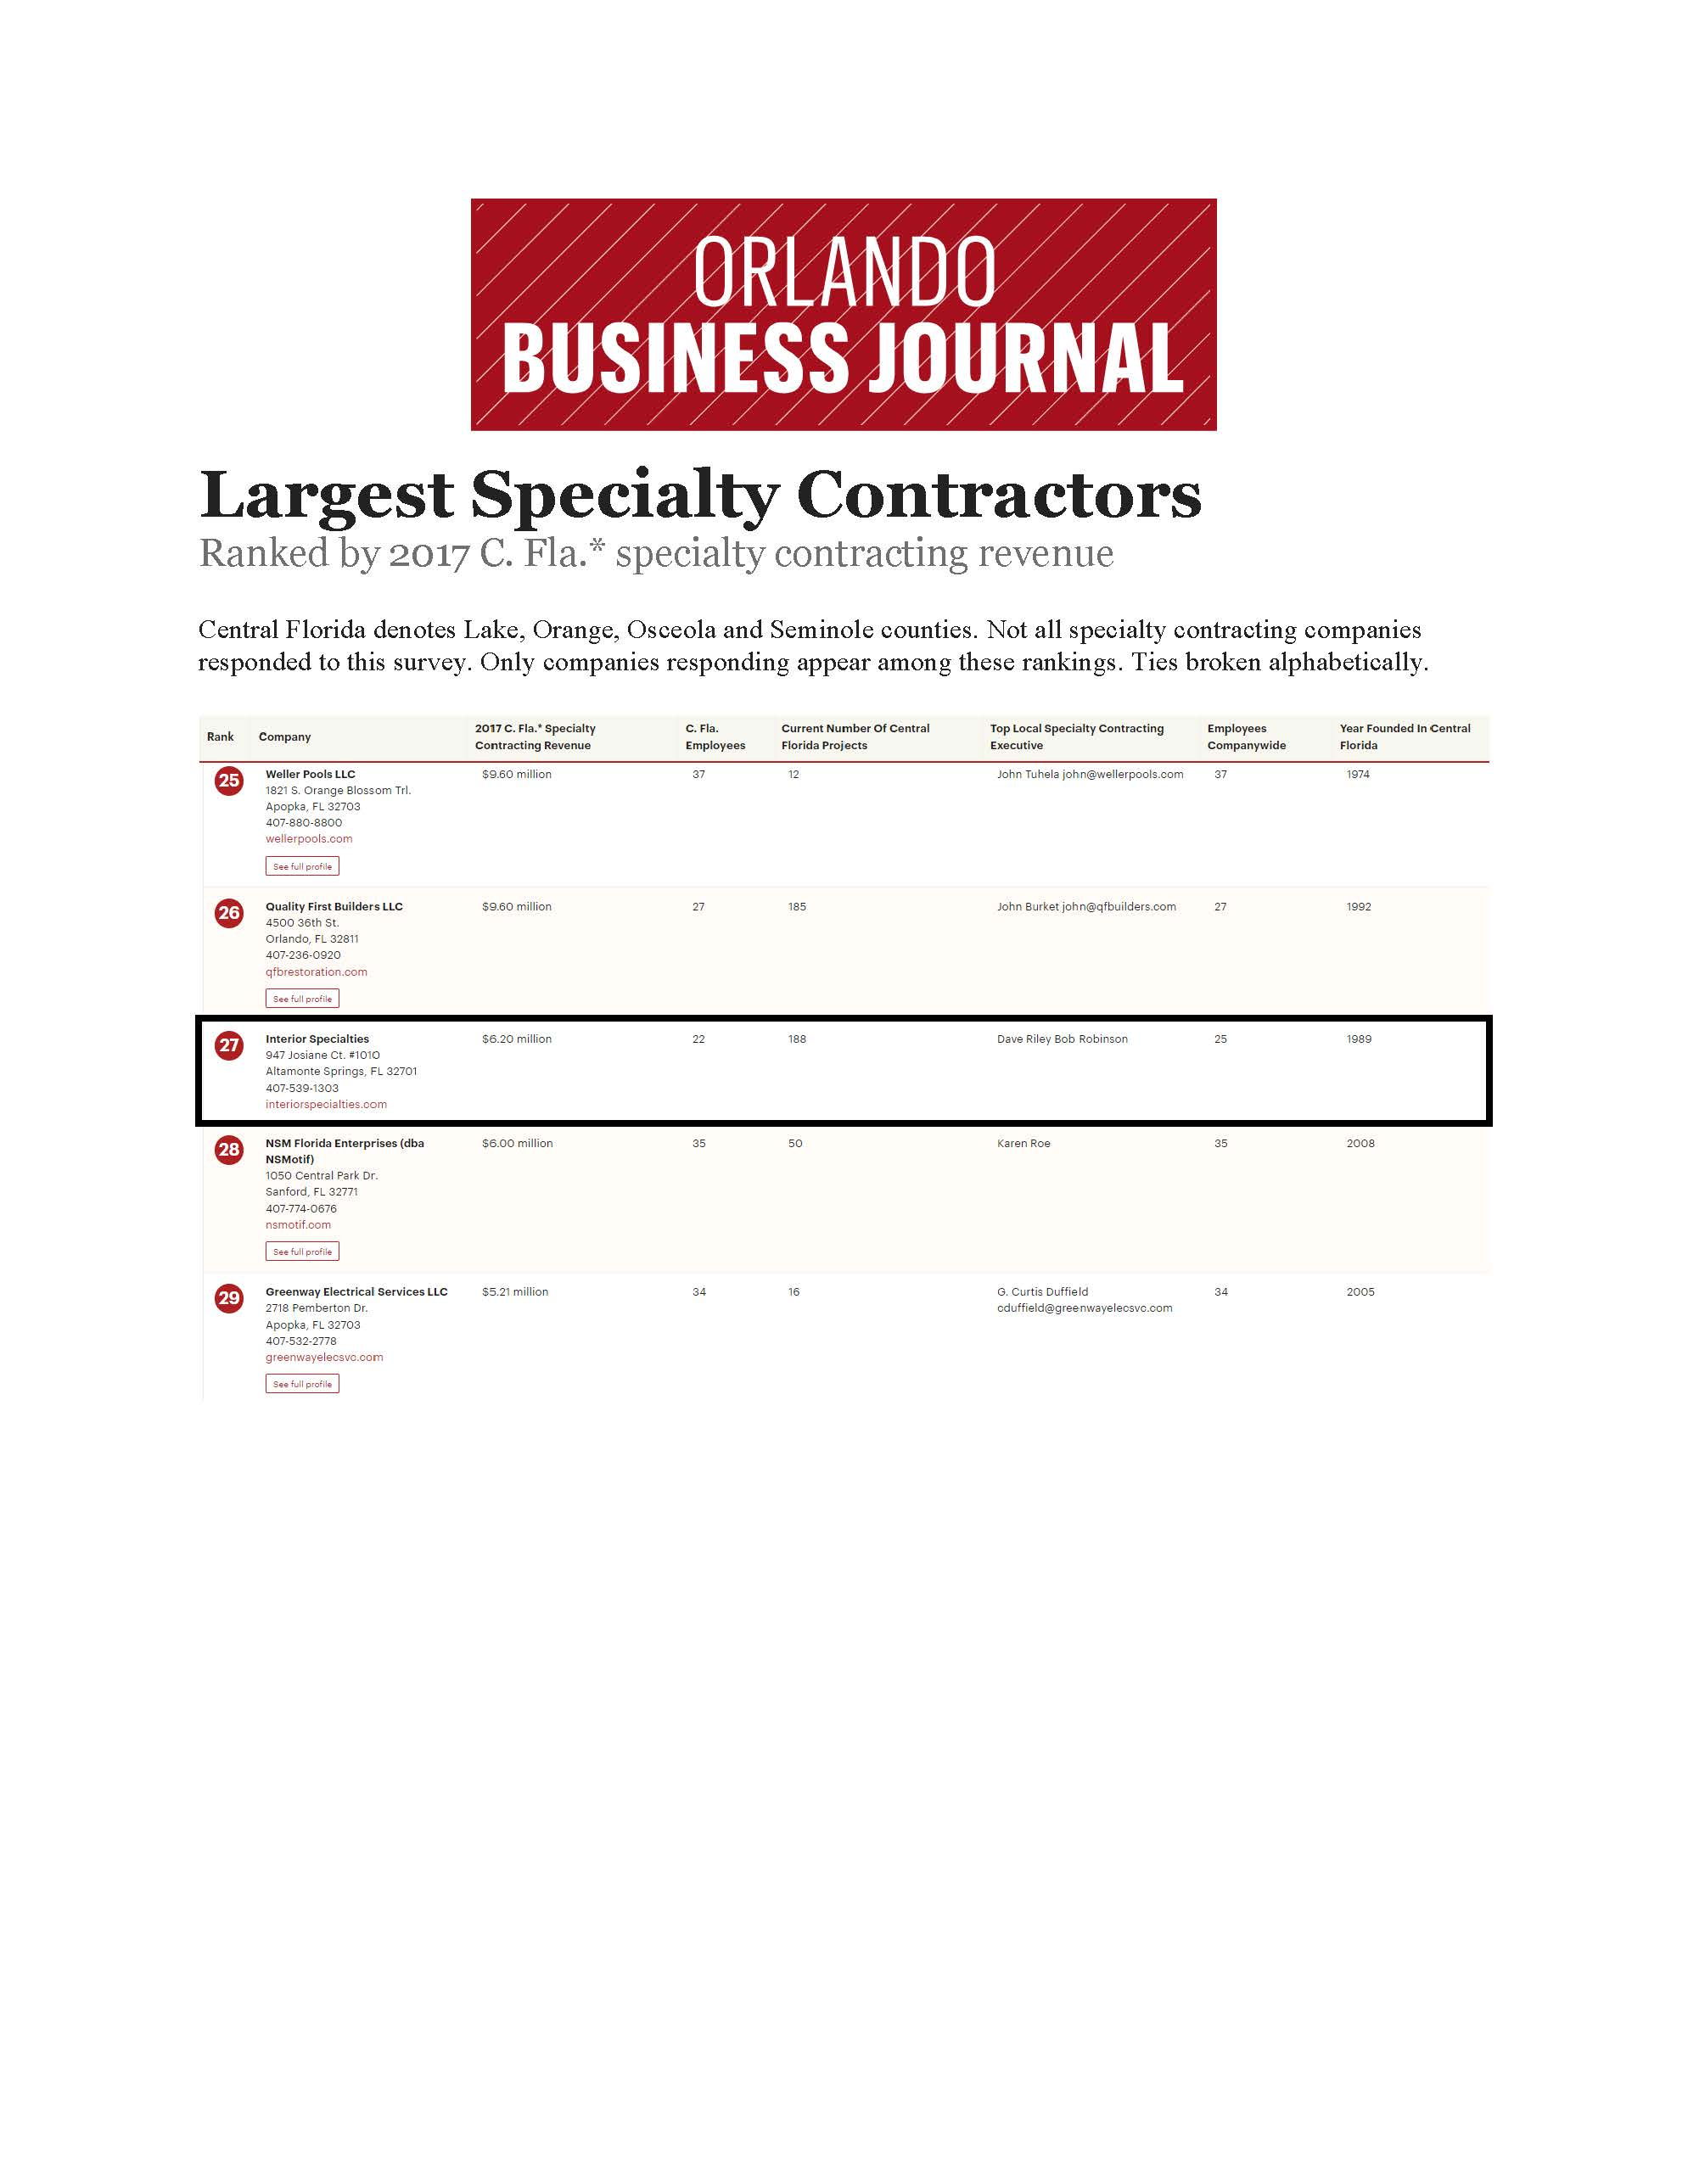 Interior Specialties OBJ Largest Specialty Contractors List 10.5.18